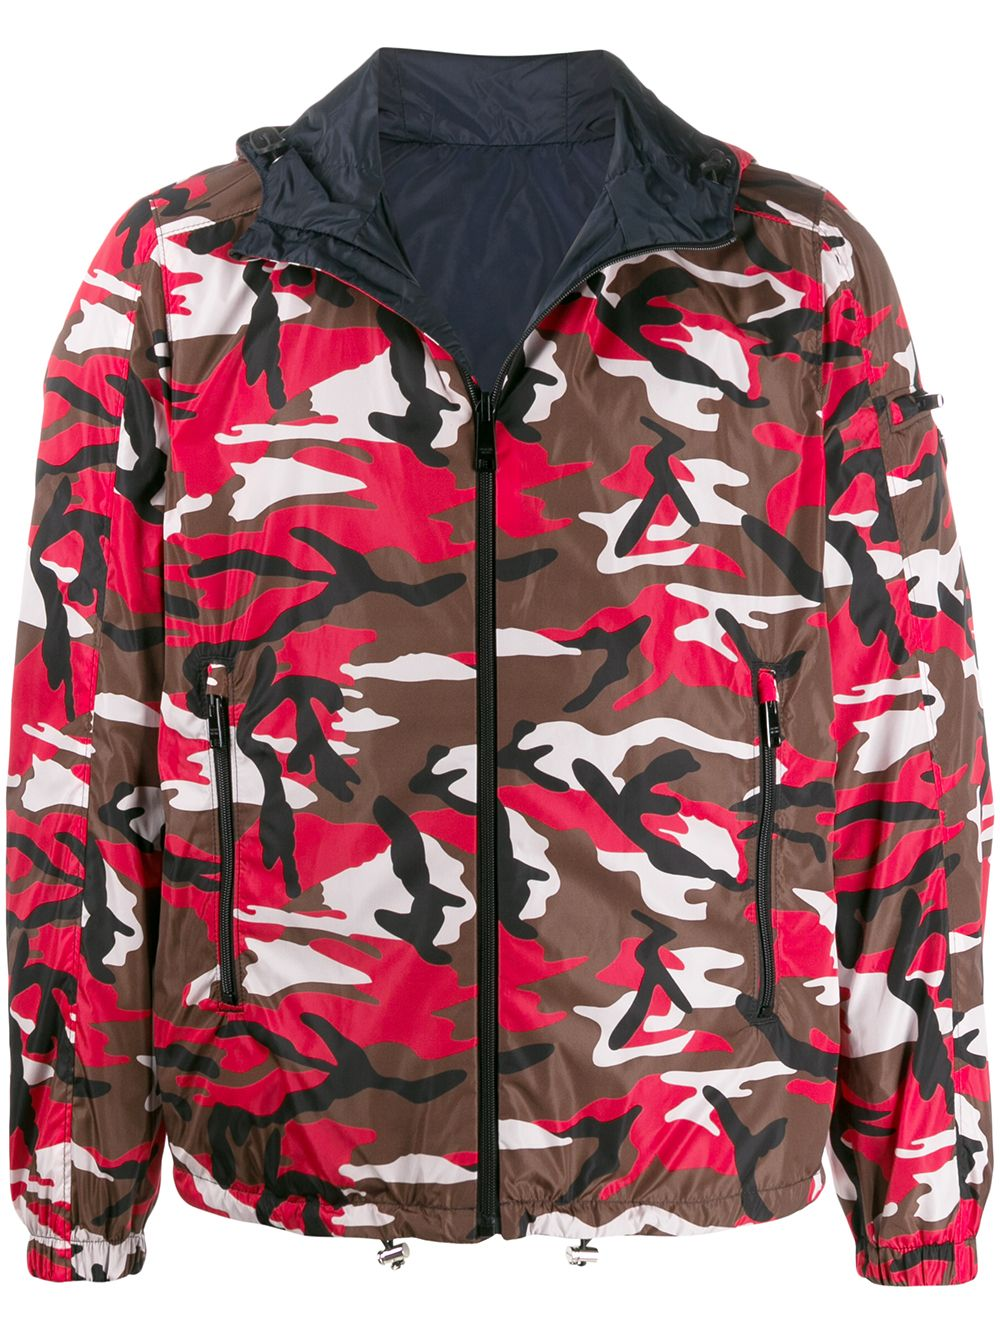 Prada camouflage reversible jacket - Red von Prada